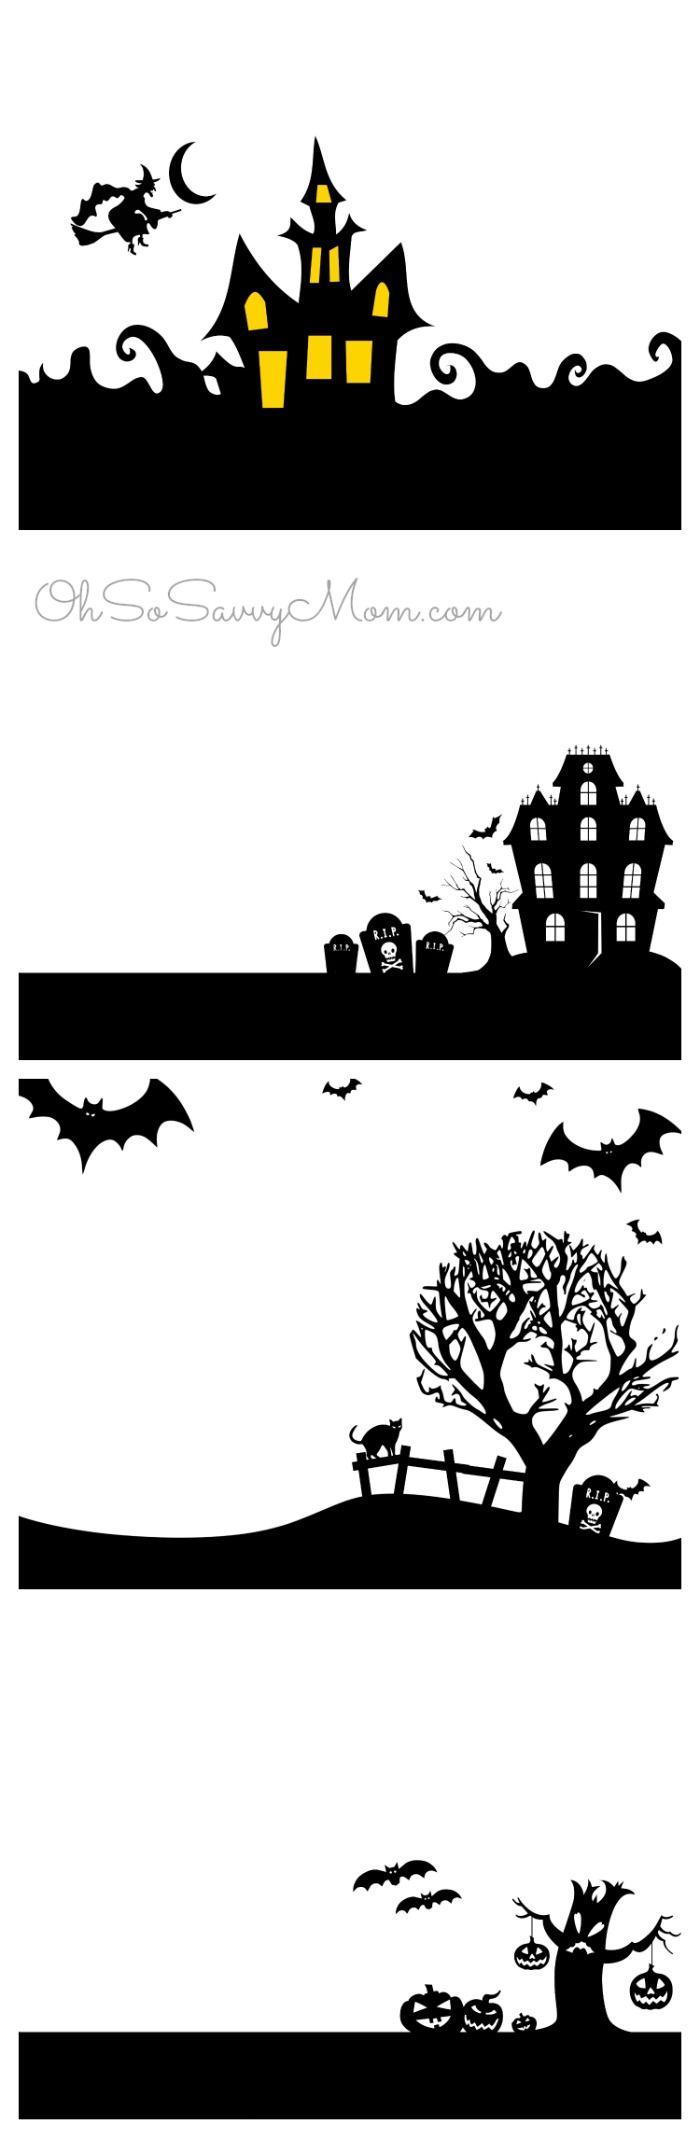 halloween printables - Halloween Decorations Printable